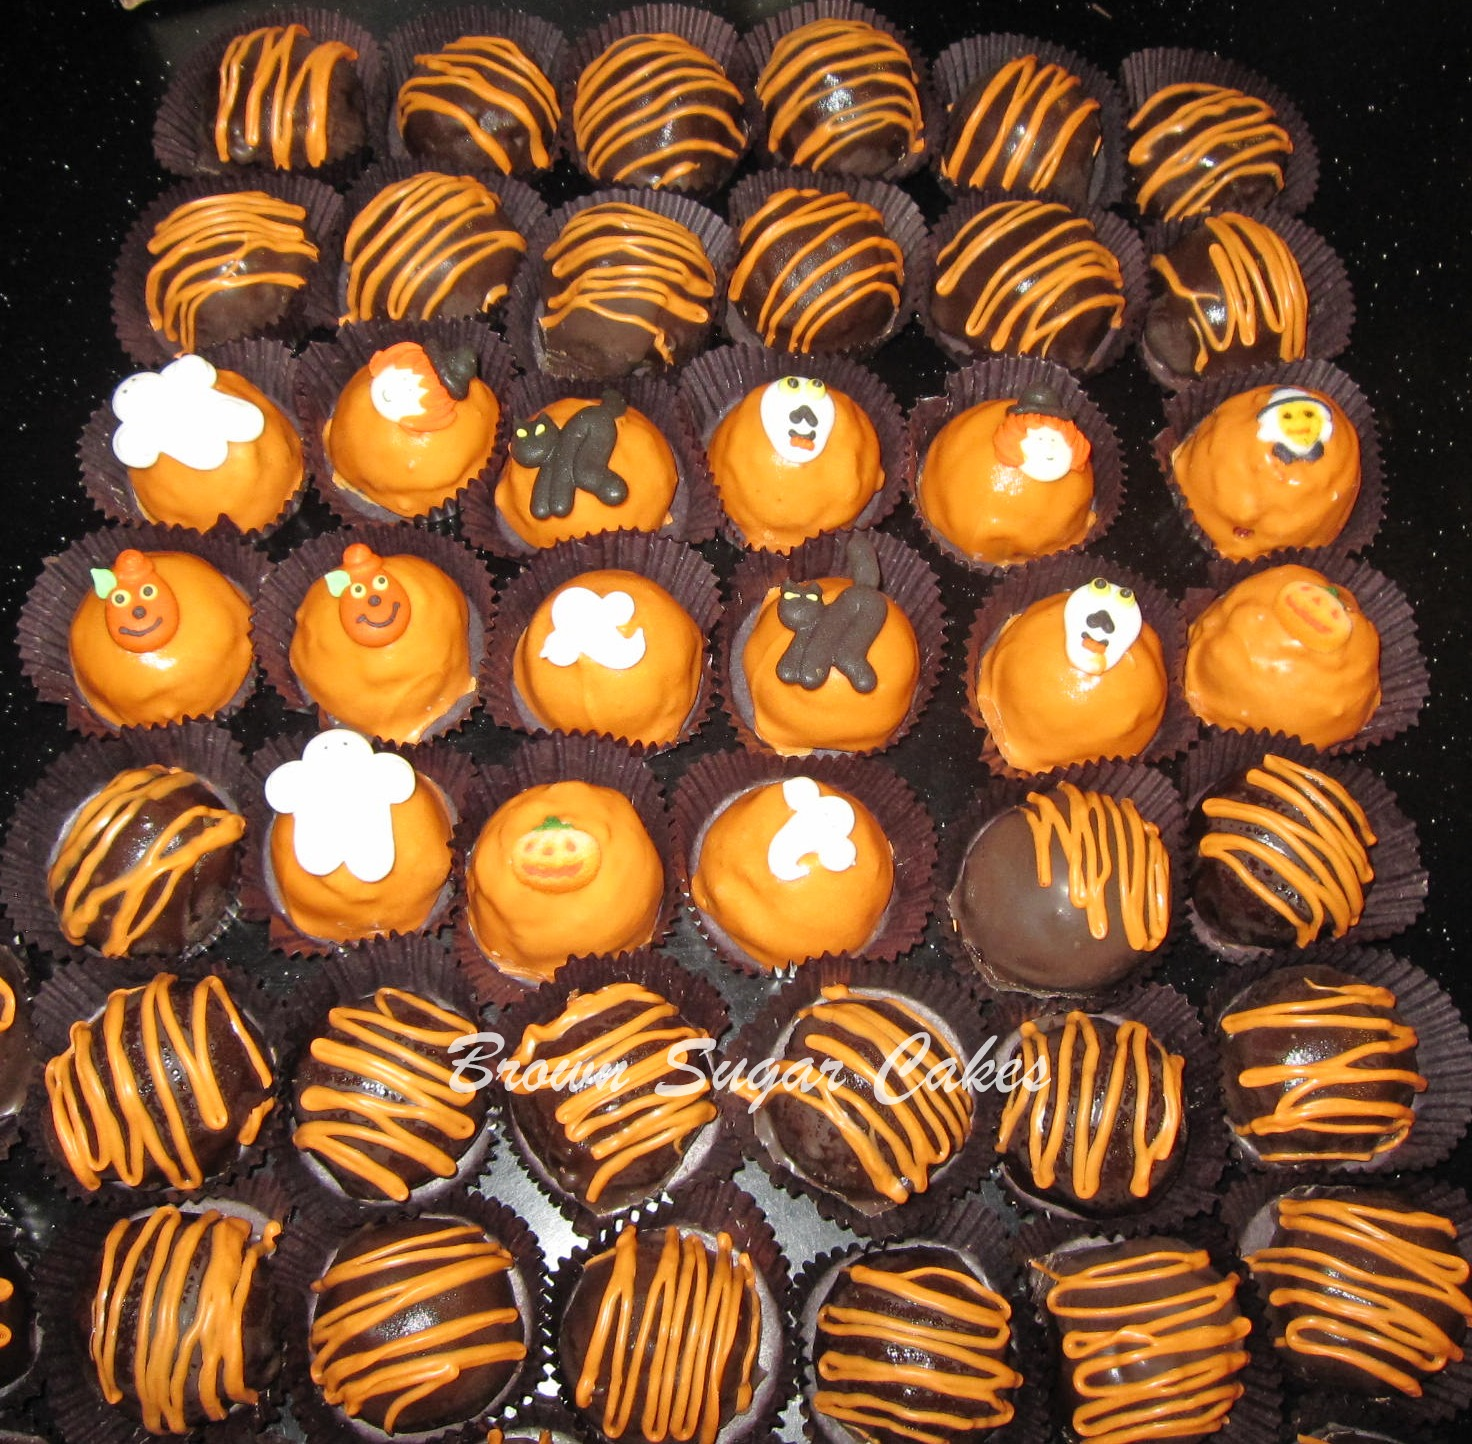 Brown Sugar Cakes: Halloween Cake Bites